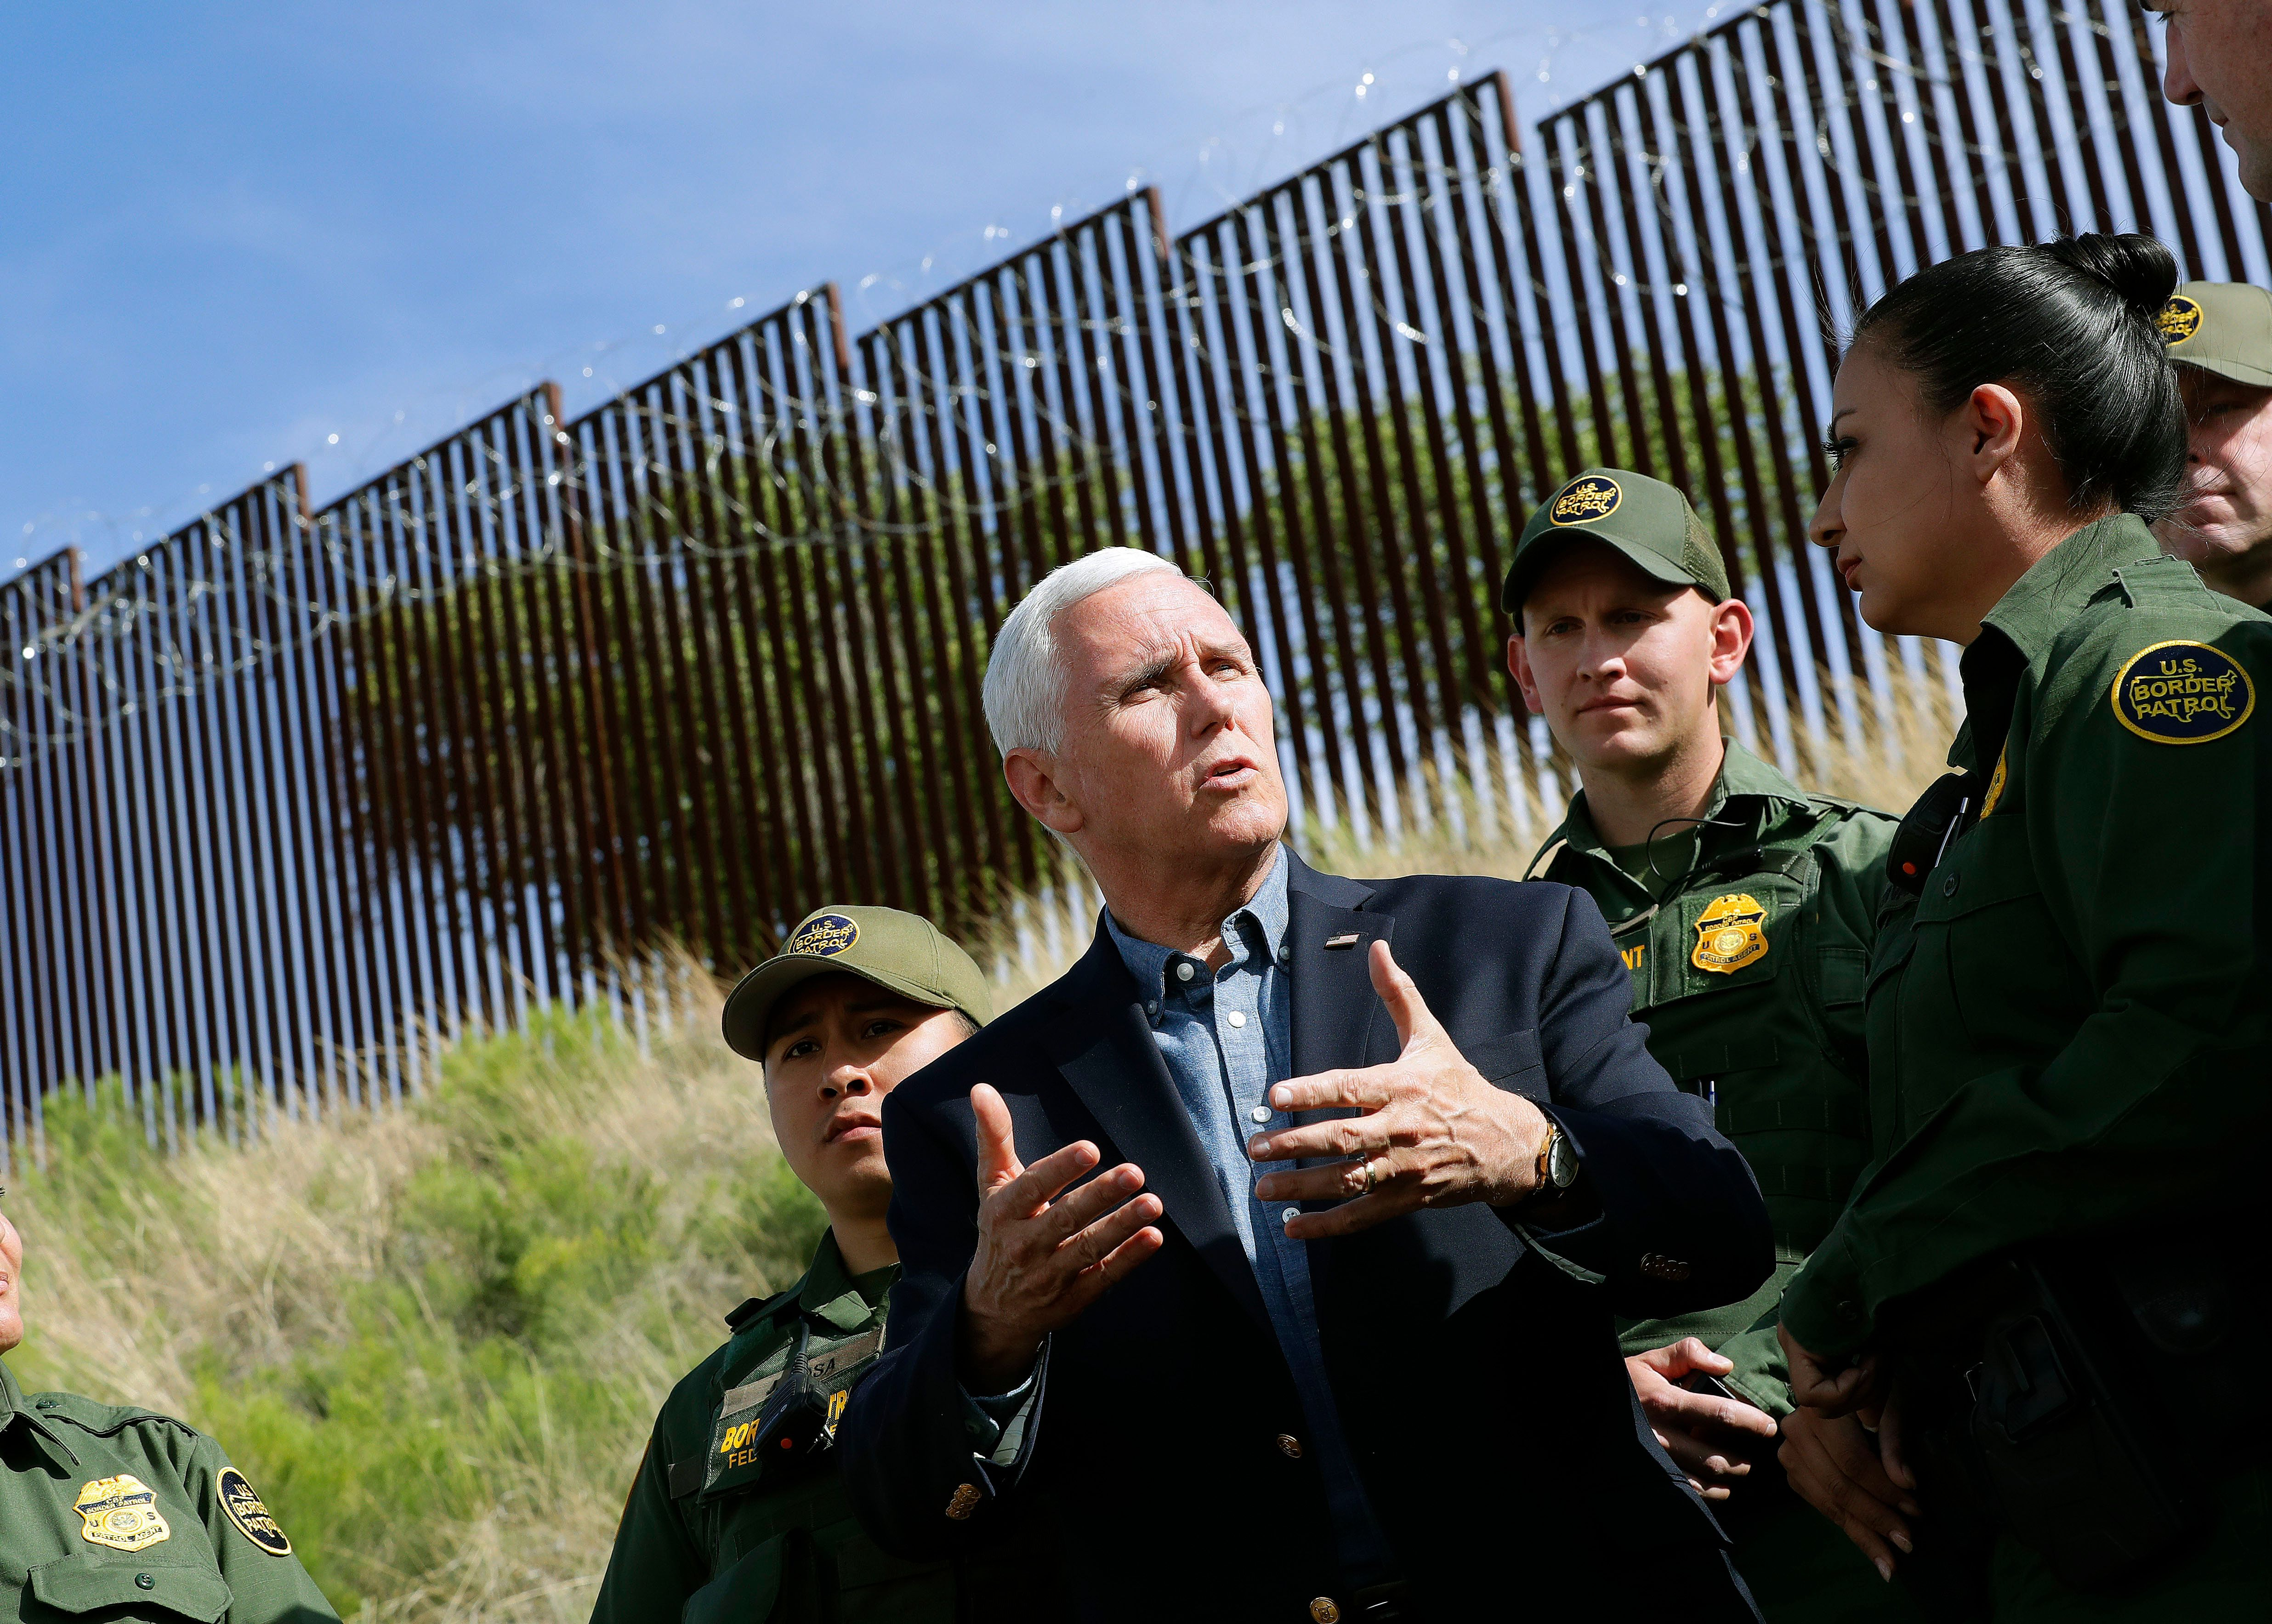 Vice President Mike Pence speaks along the International border while meeting with Customs and Border Patrol agents, Thursday, April 11, 2019, in Nogales, Ariz. (AP Photo/Matt York)